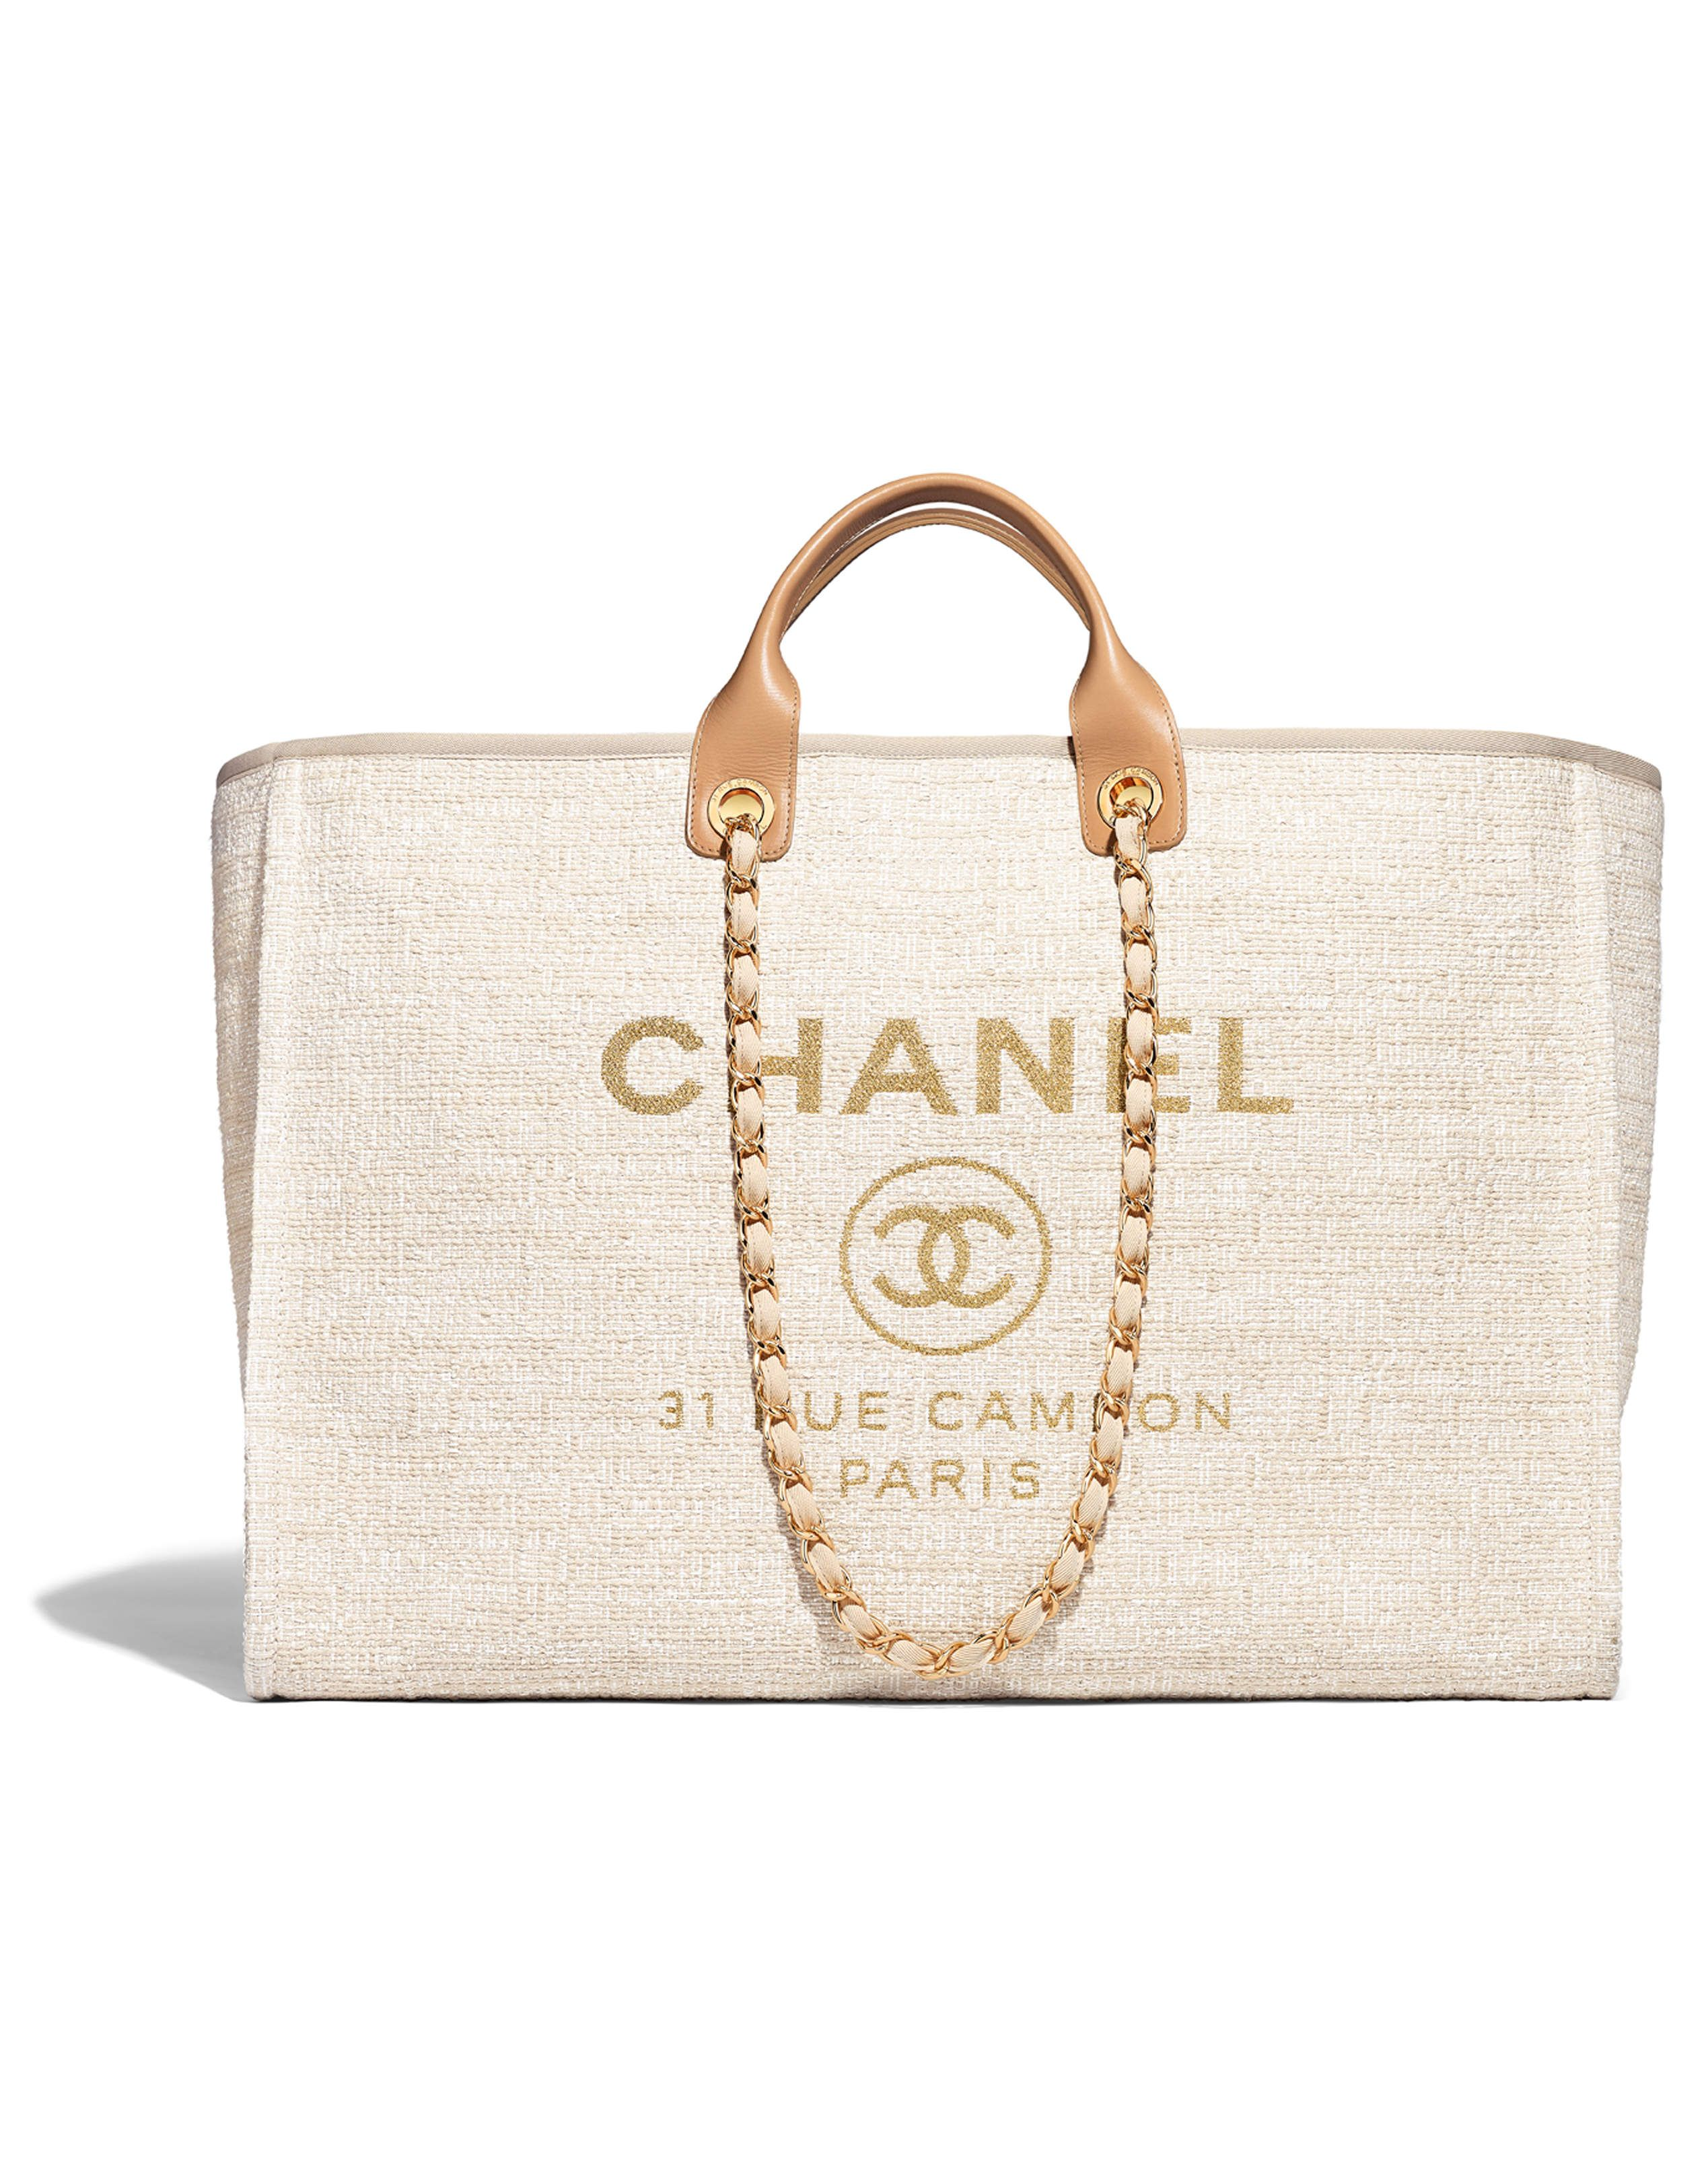 9eaa418fc5e7 Chanel - Cruise 2017/2018 | Large canvas shopping bag | Style in ...